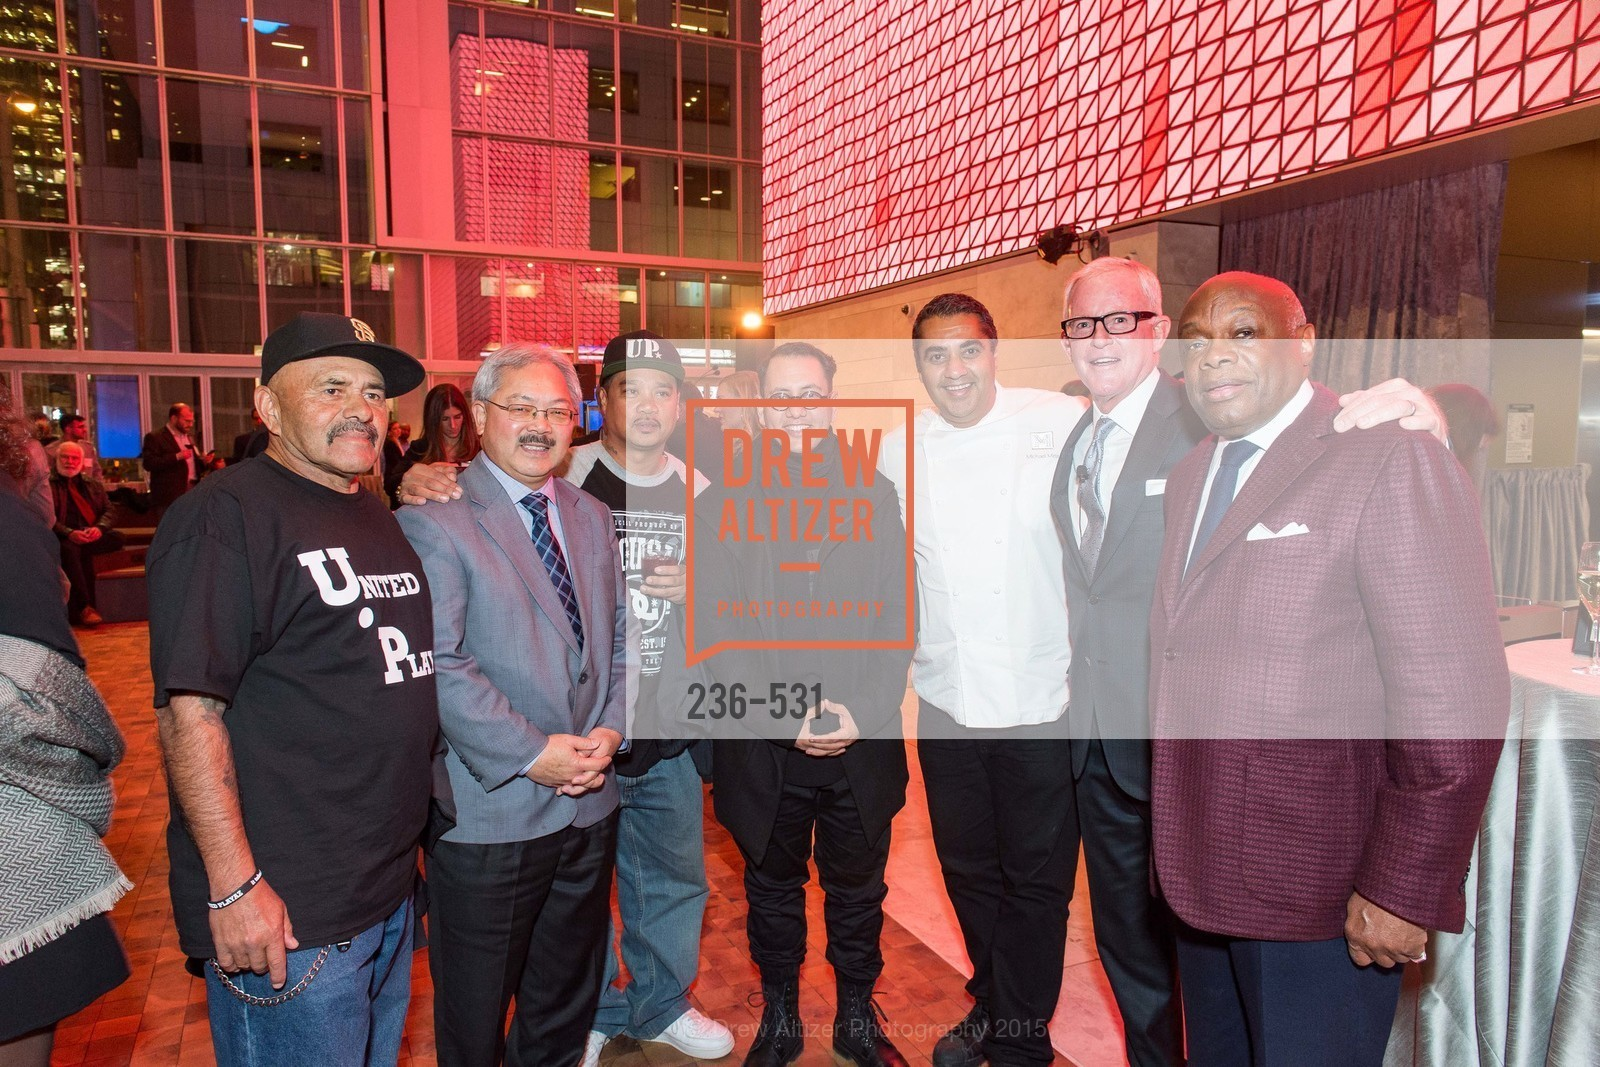 Ed Lee, Refik Anadol, Michael Mina, John Kilroy, Willie Brown, Kilroy Unveiling Presents Virtual Depictions: San Francisco by Refik Anadol, 350 Mission Street. 350 Mission Street, November 16th, 2015,Drew Altizer, Drew Altizer Photography, full-service agency, private events, San Francisco photographer, photographer california